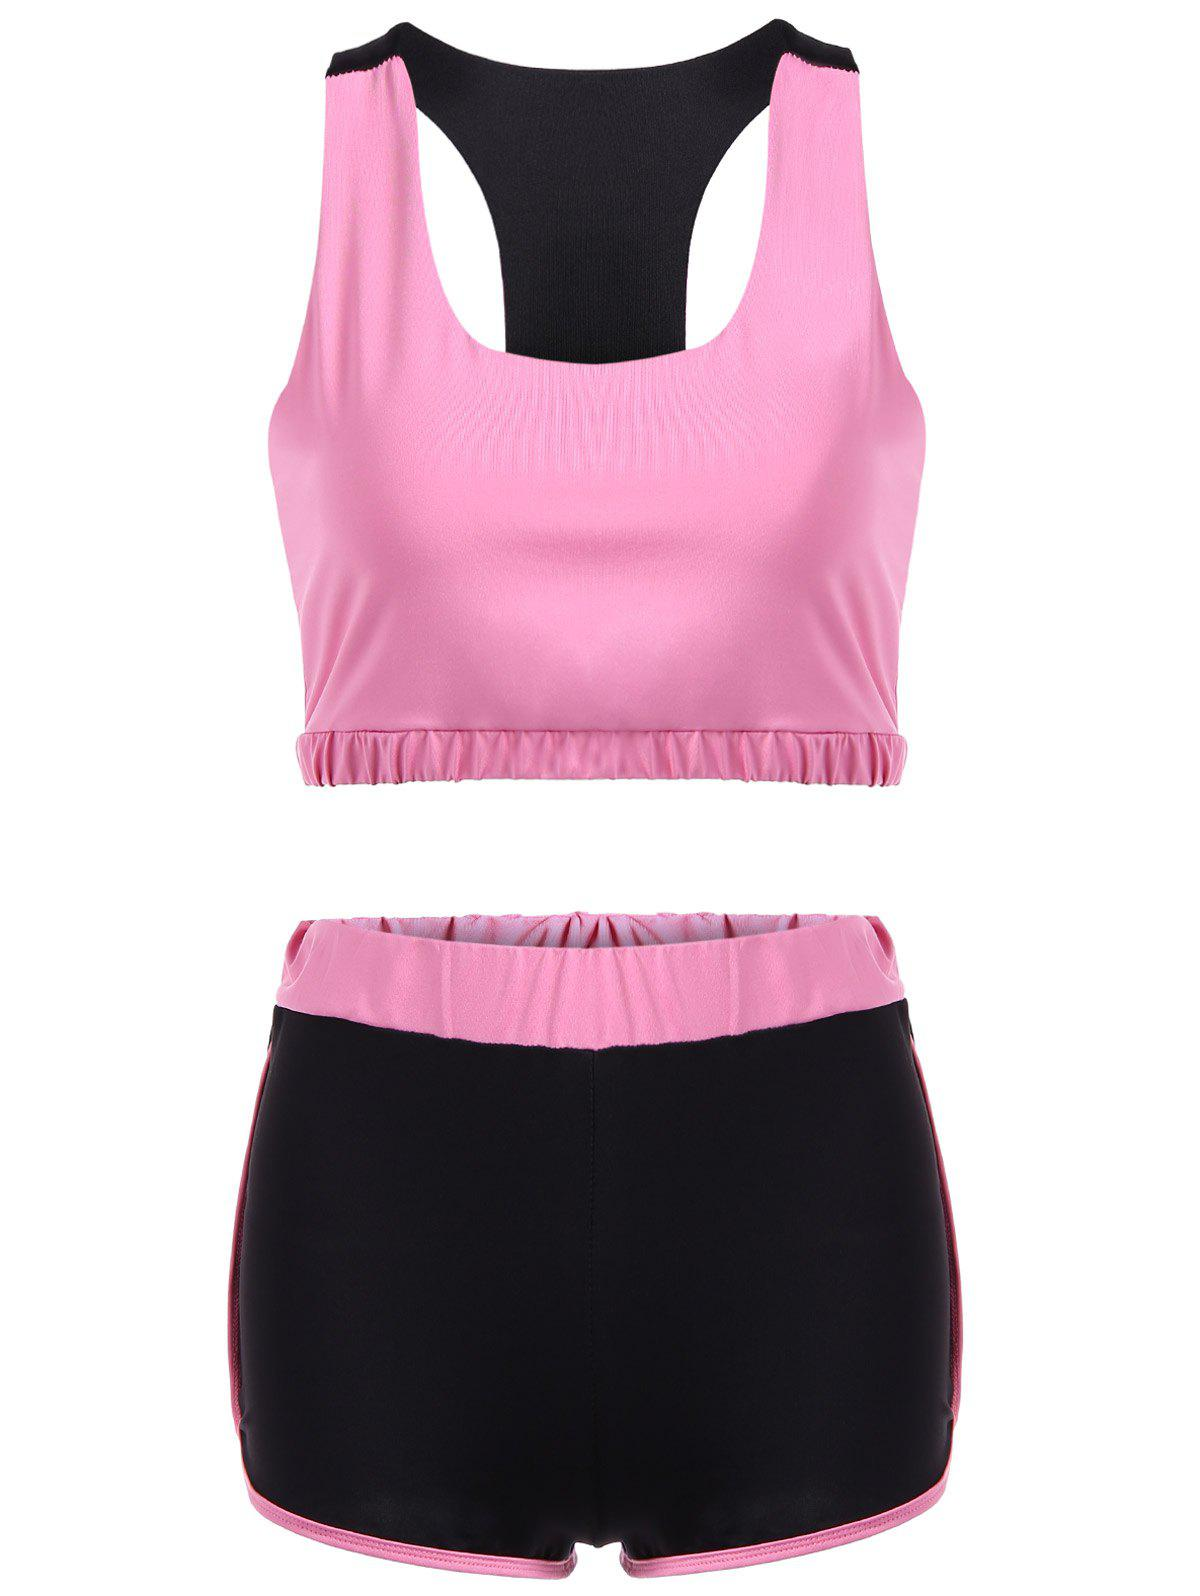 Latest Racerback U Neck Sporty Bra and Shorts Twinset